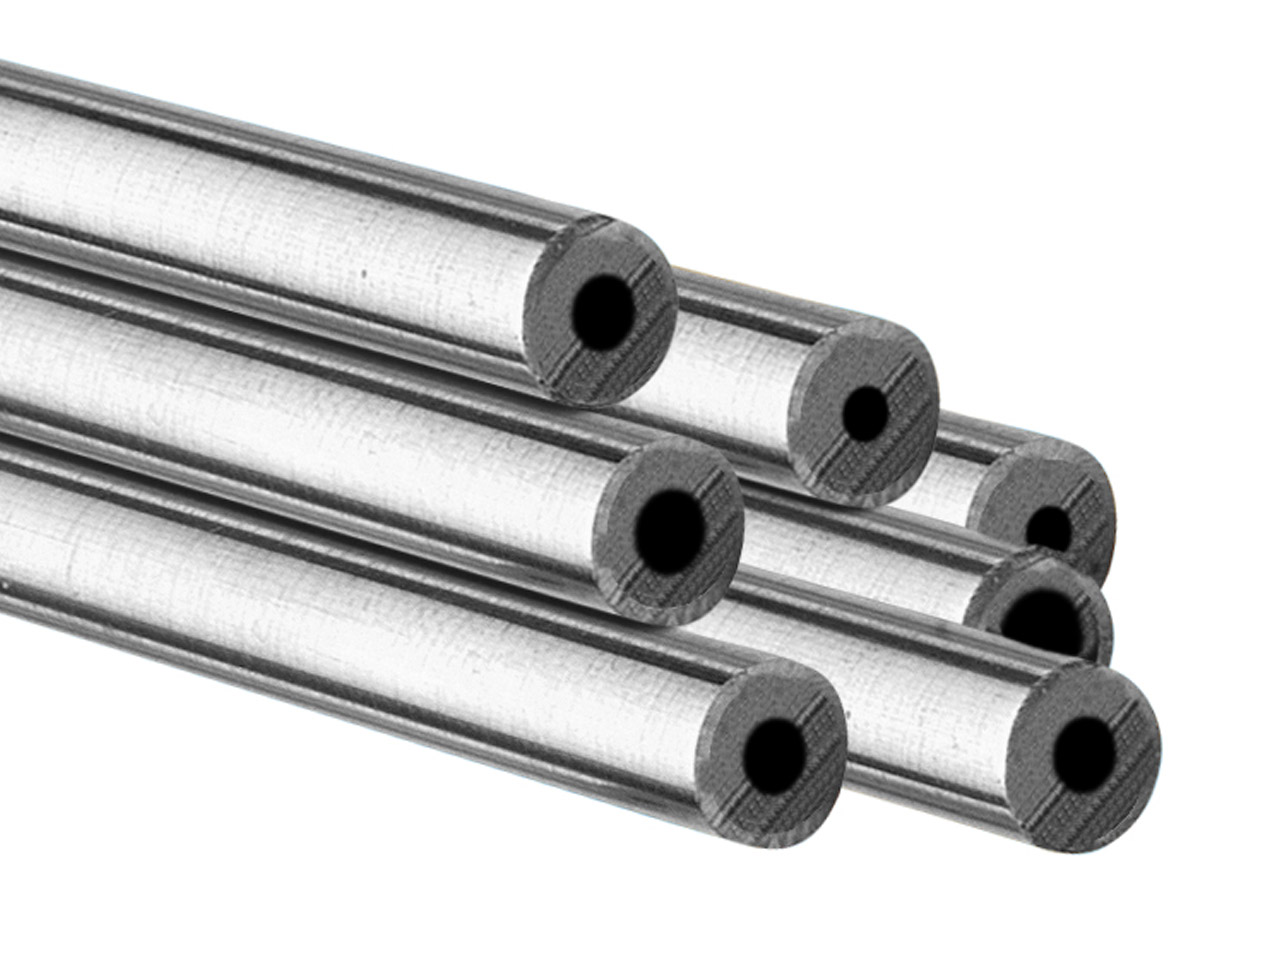 Sterling Silver Jt Tube,            Outside Diameter 6.35mm,            Inside Diameter 3.05mm, 1.65mm Wall Thickness